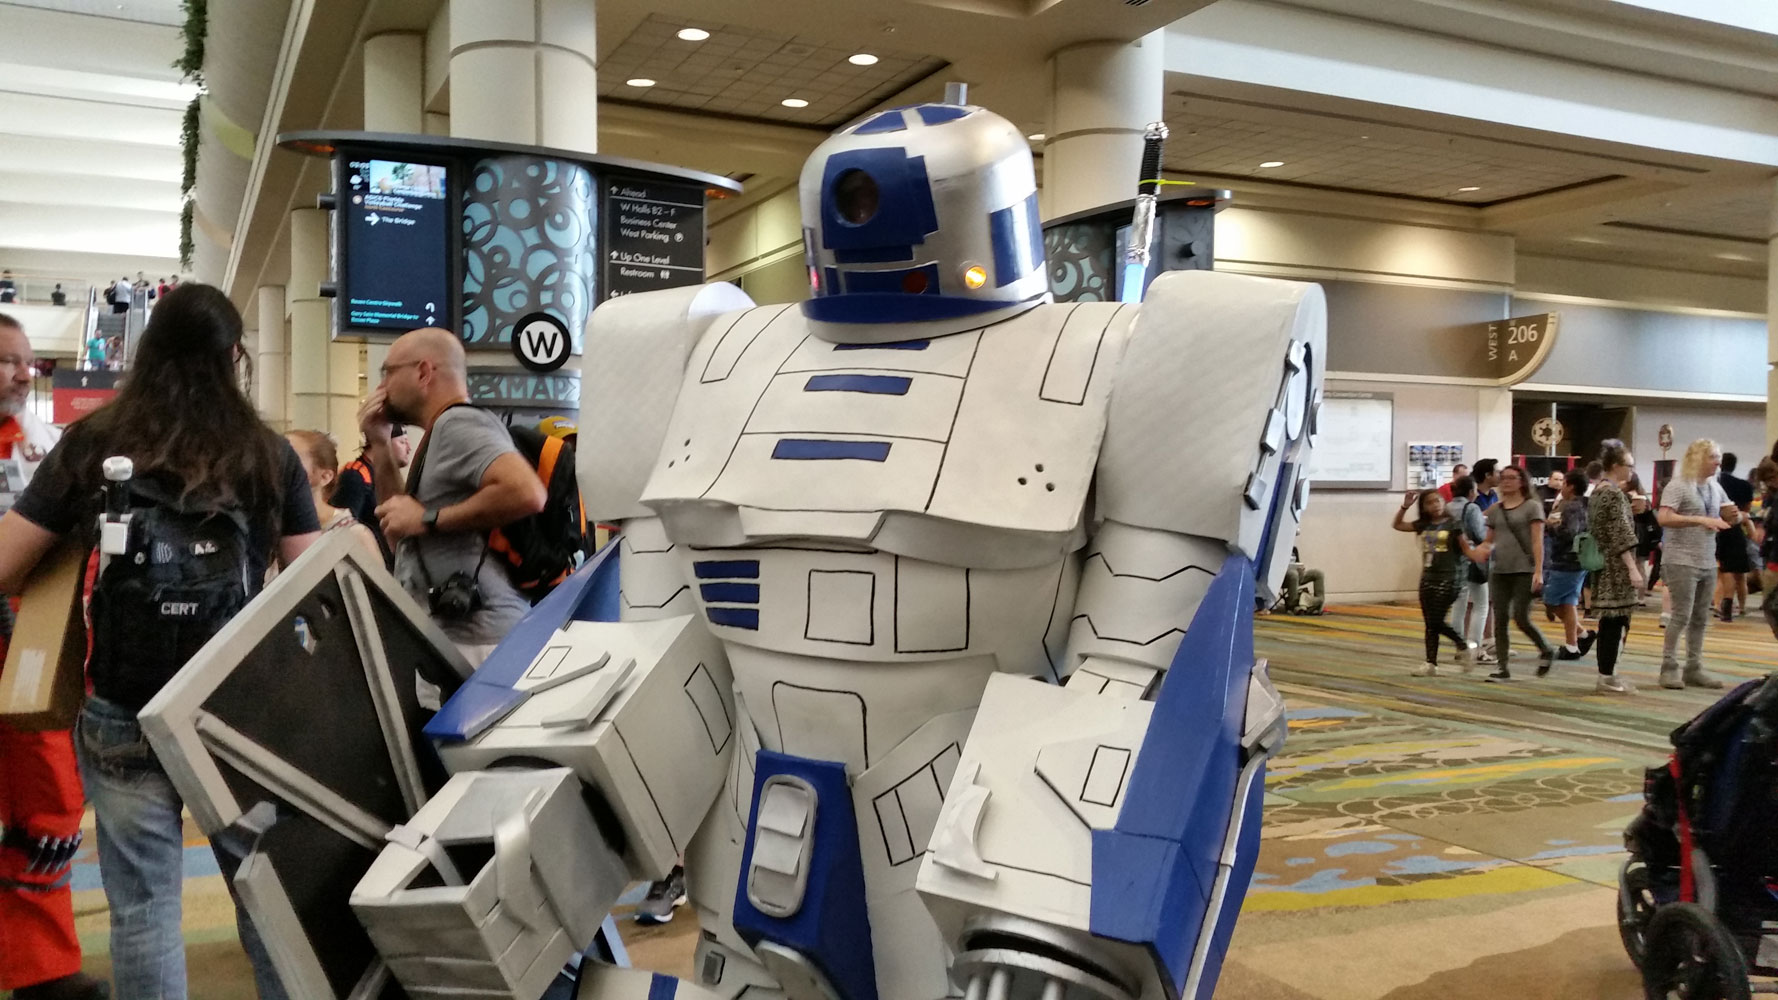 R2-D2 + Transformers!  More than meets your bleepbloop!